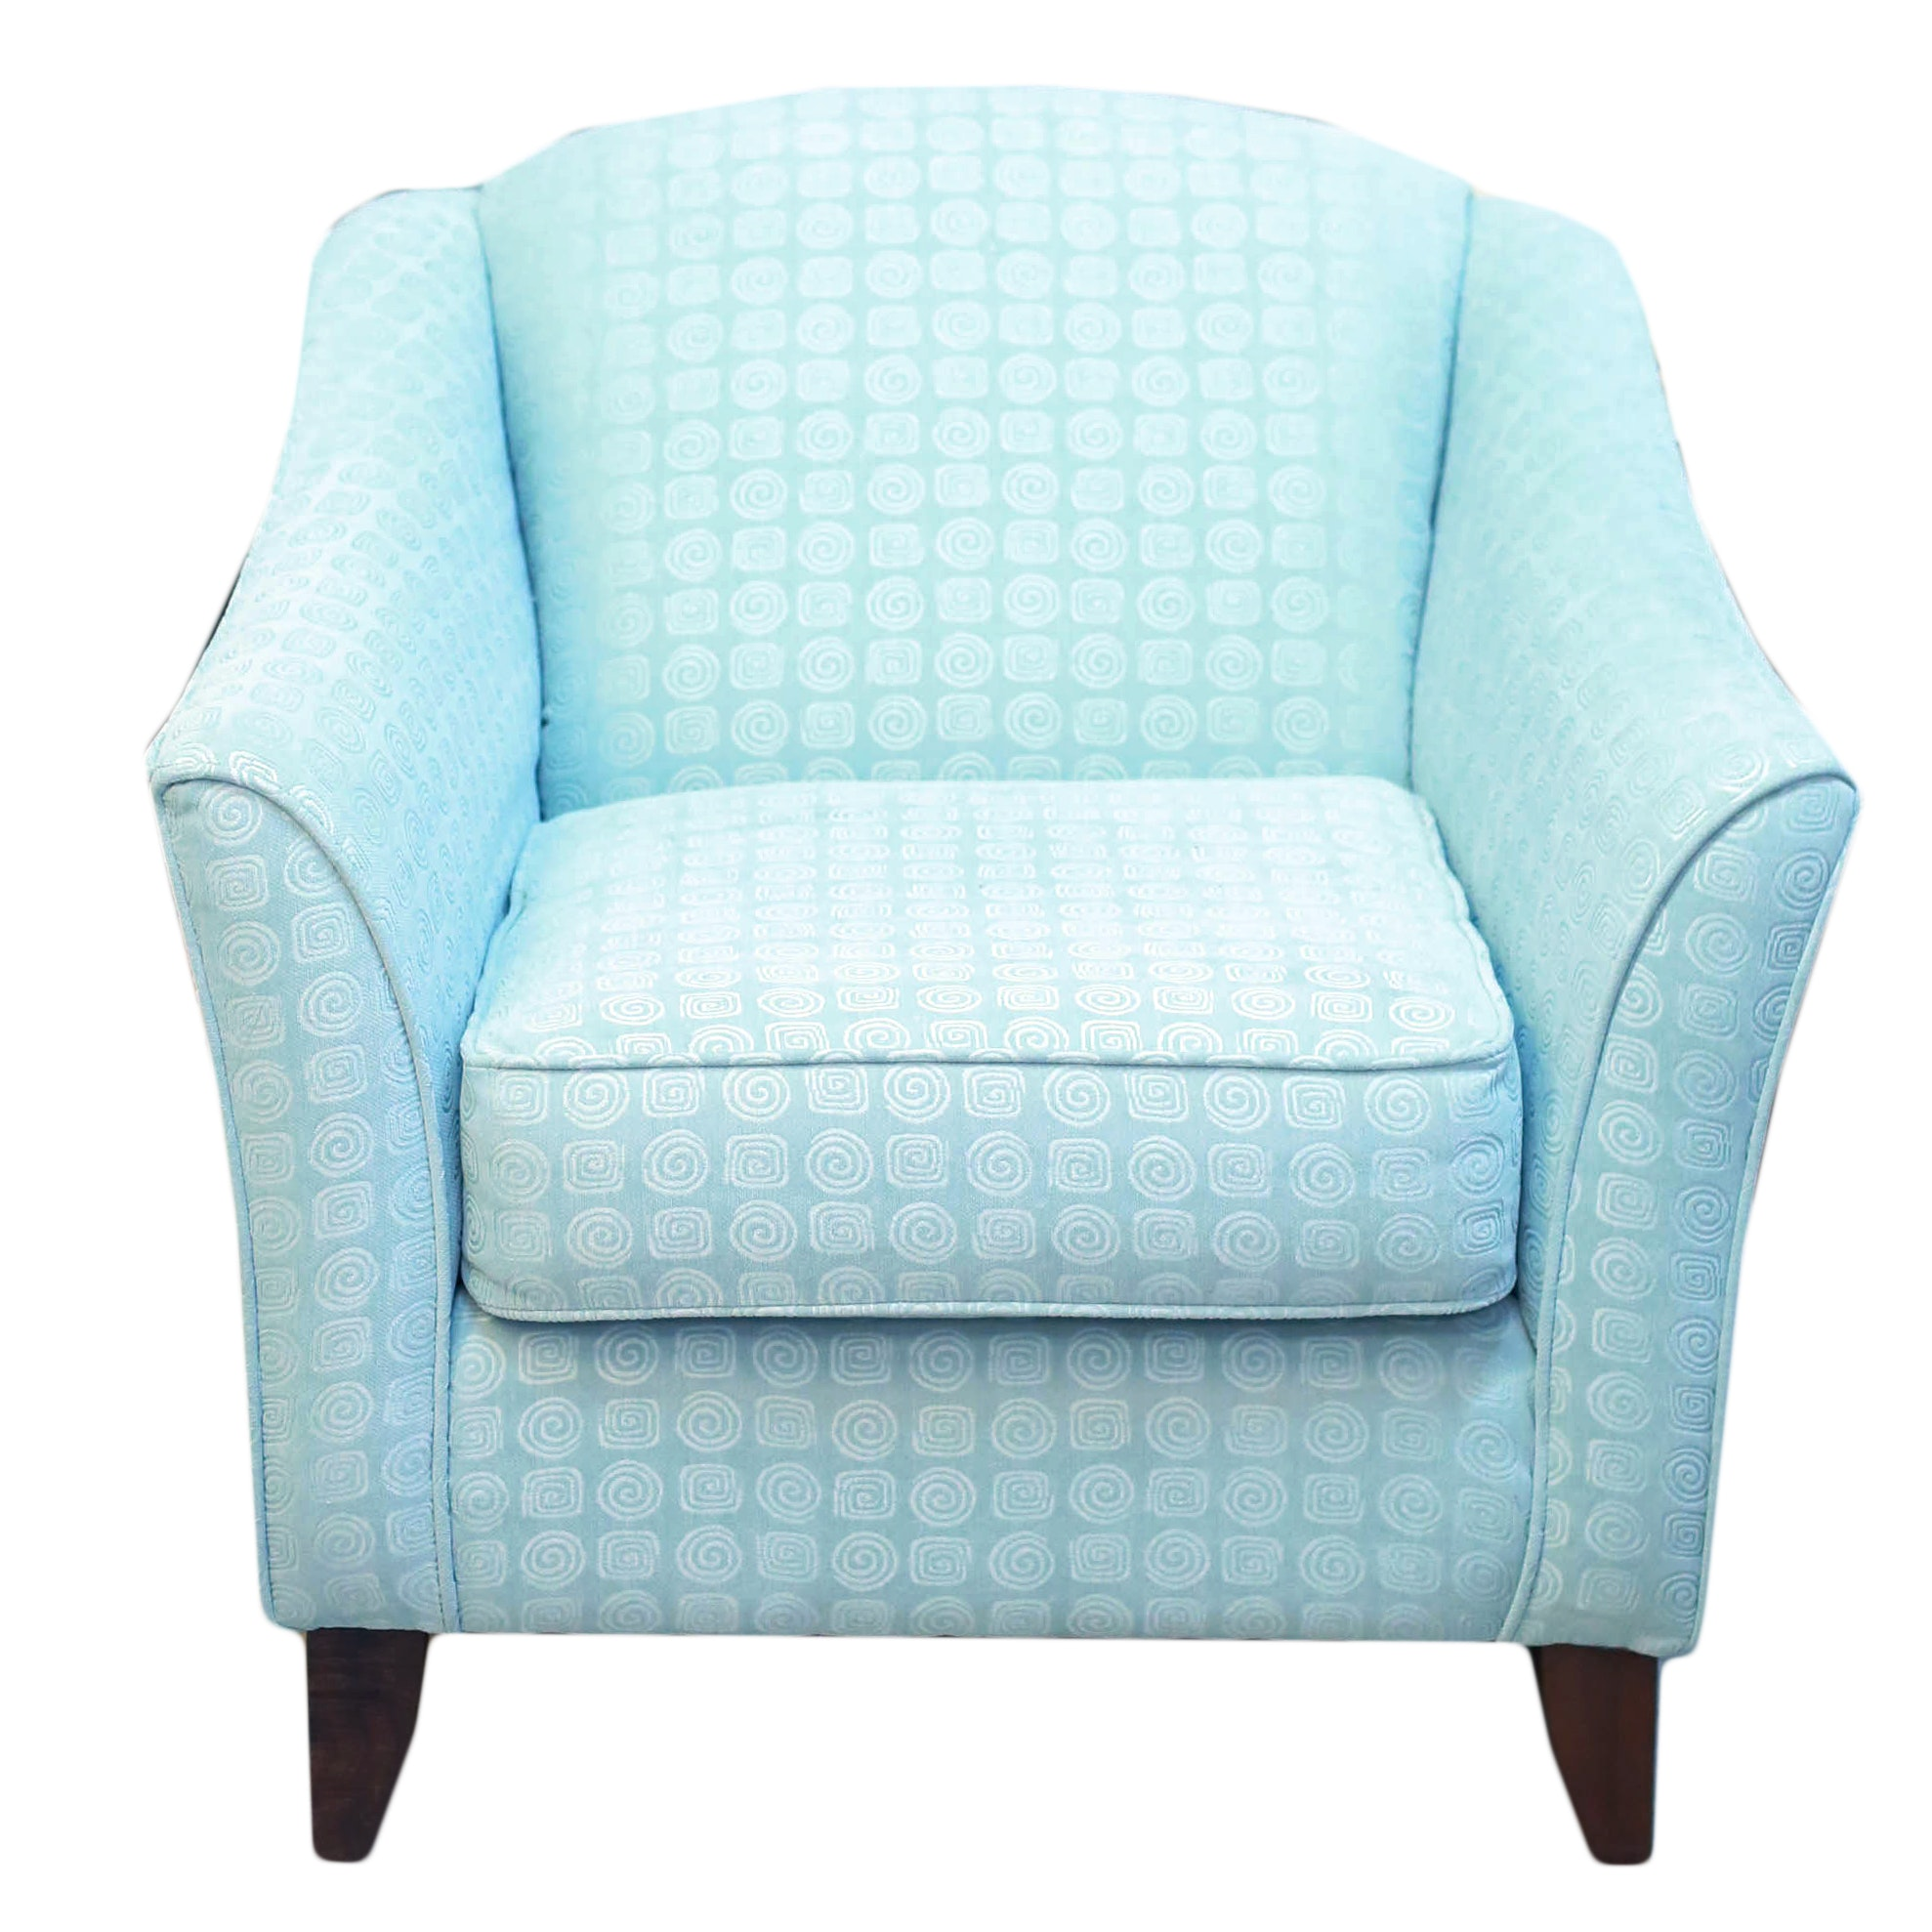 Hillcraft Furniture Company Mint Arm Chair ...